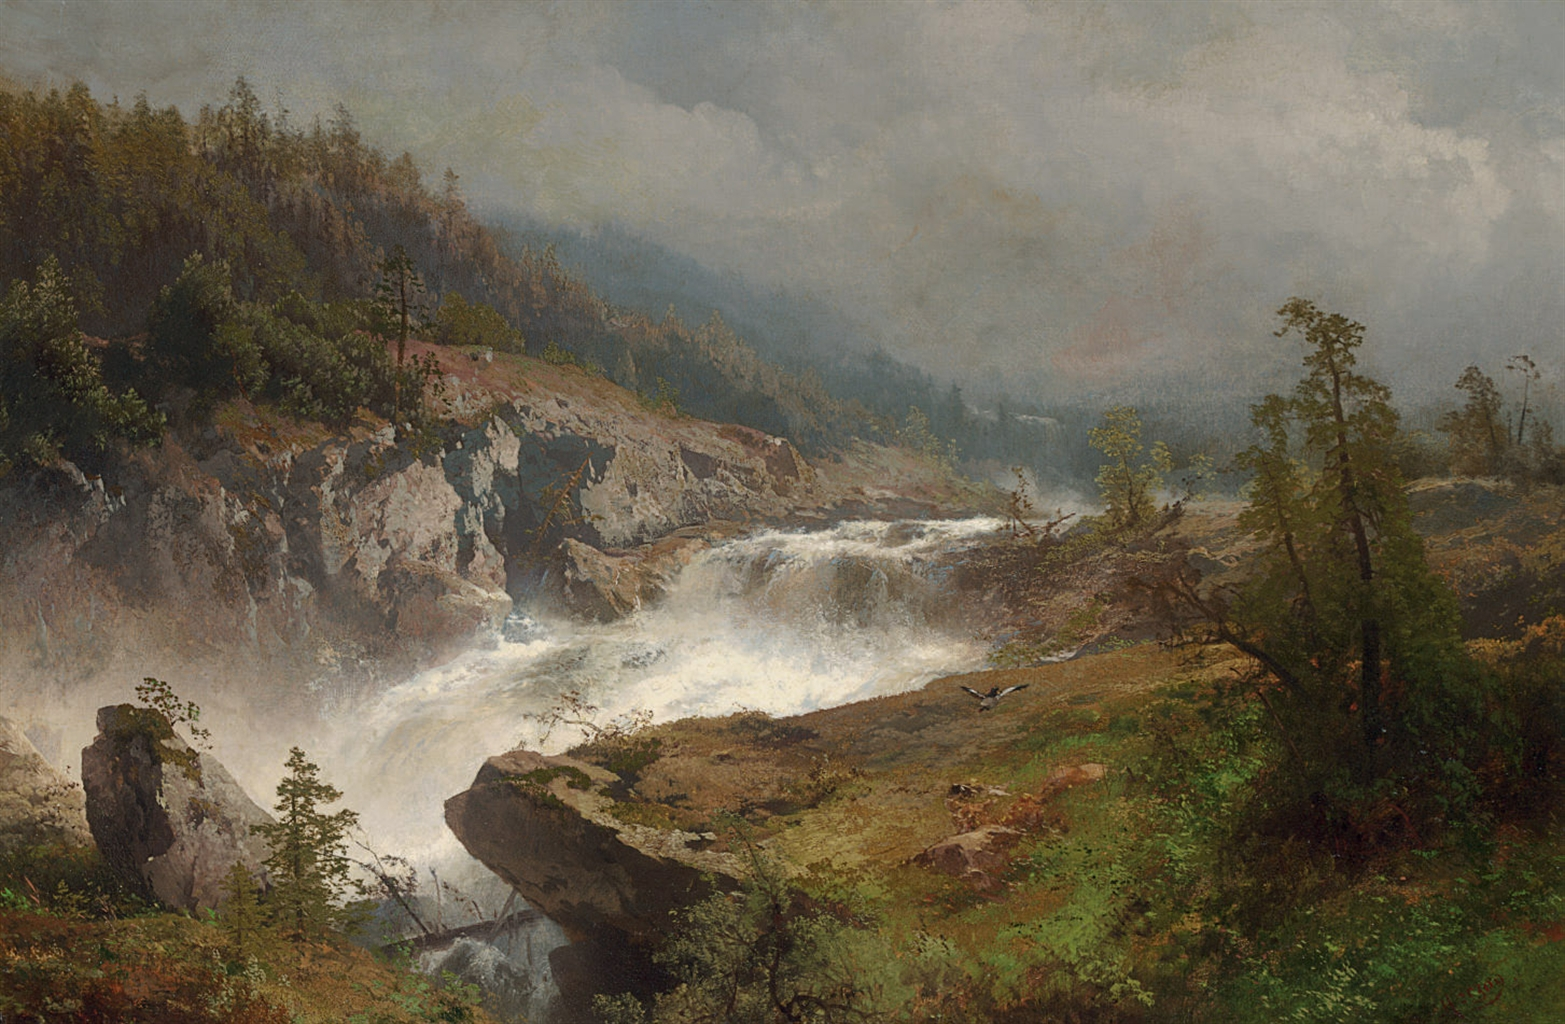 Hermann_Herzog_-_Raging_River